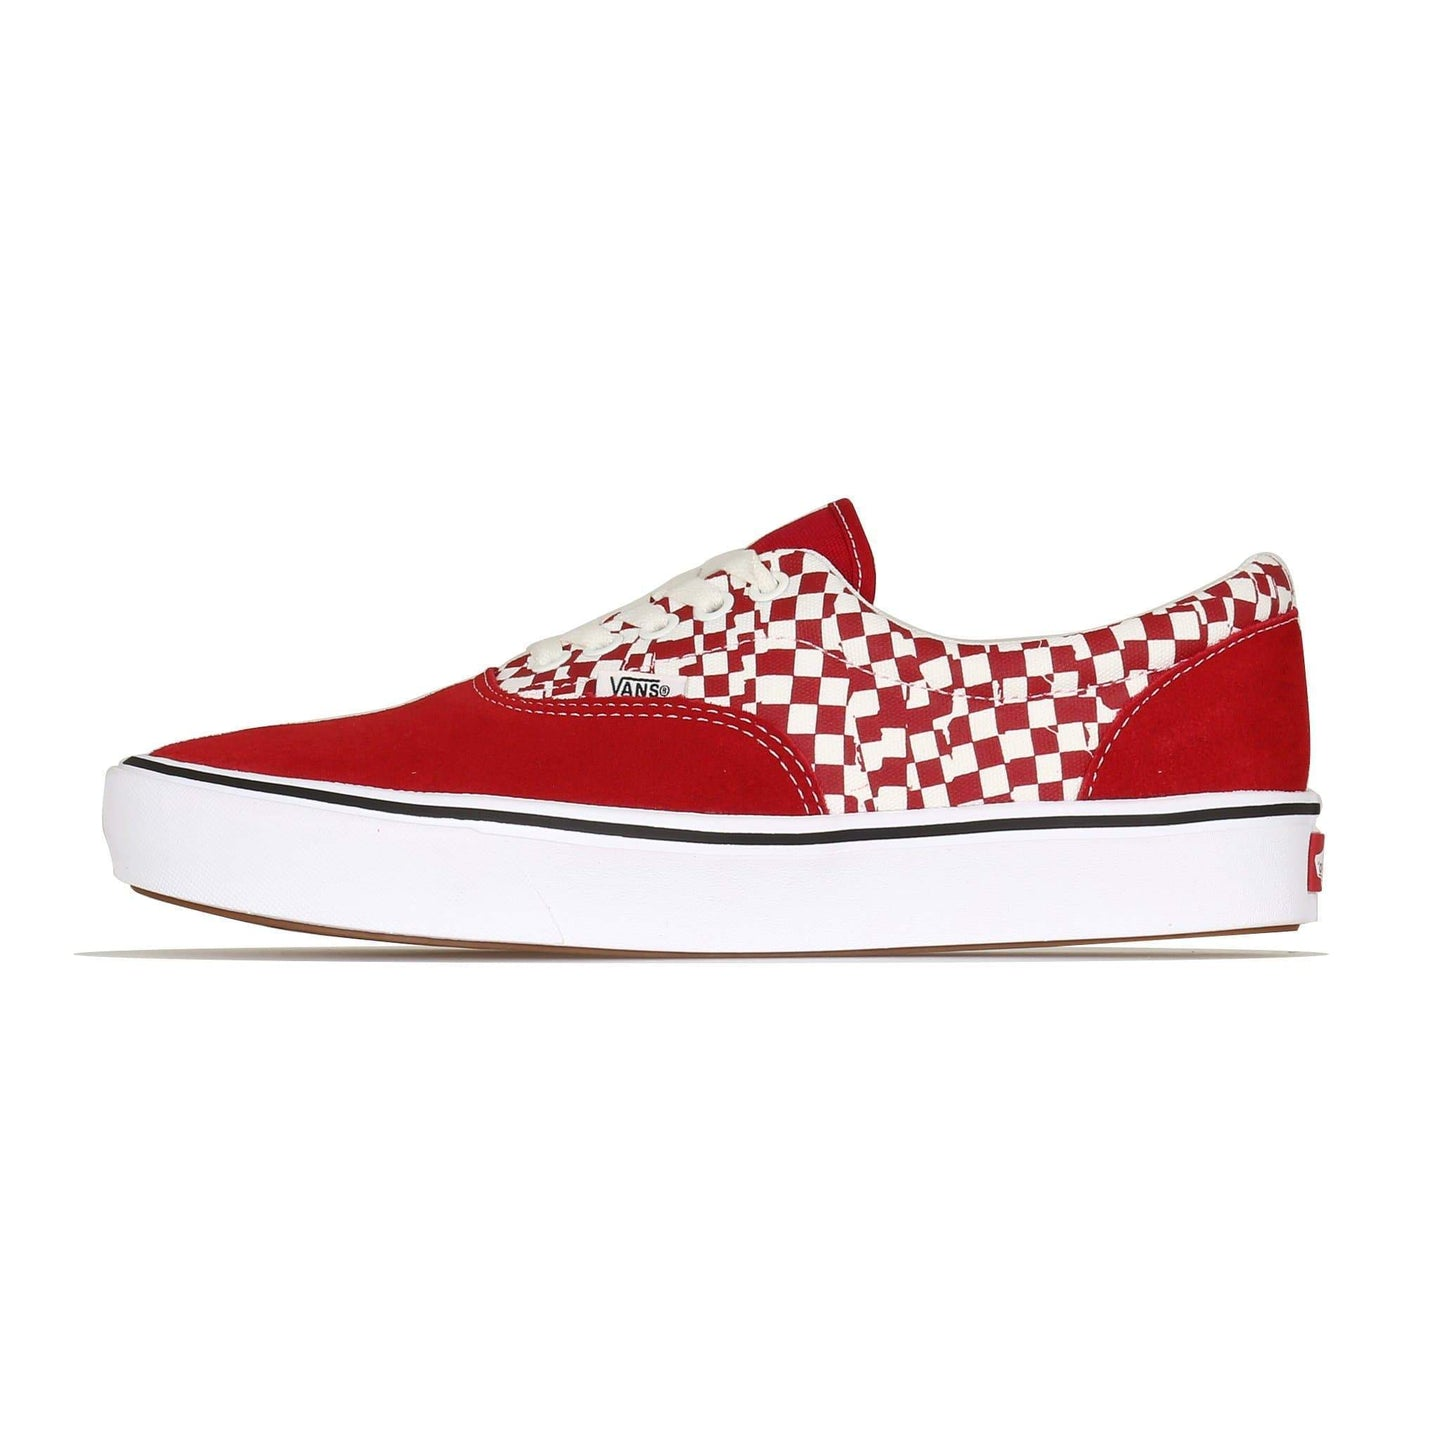 Vans Comfycush Era (Tear Check) - Racing Red / True White UK 8 VA3WM9V9Z18 193395047054 Vans Trainers